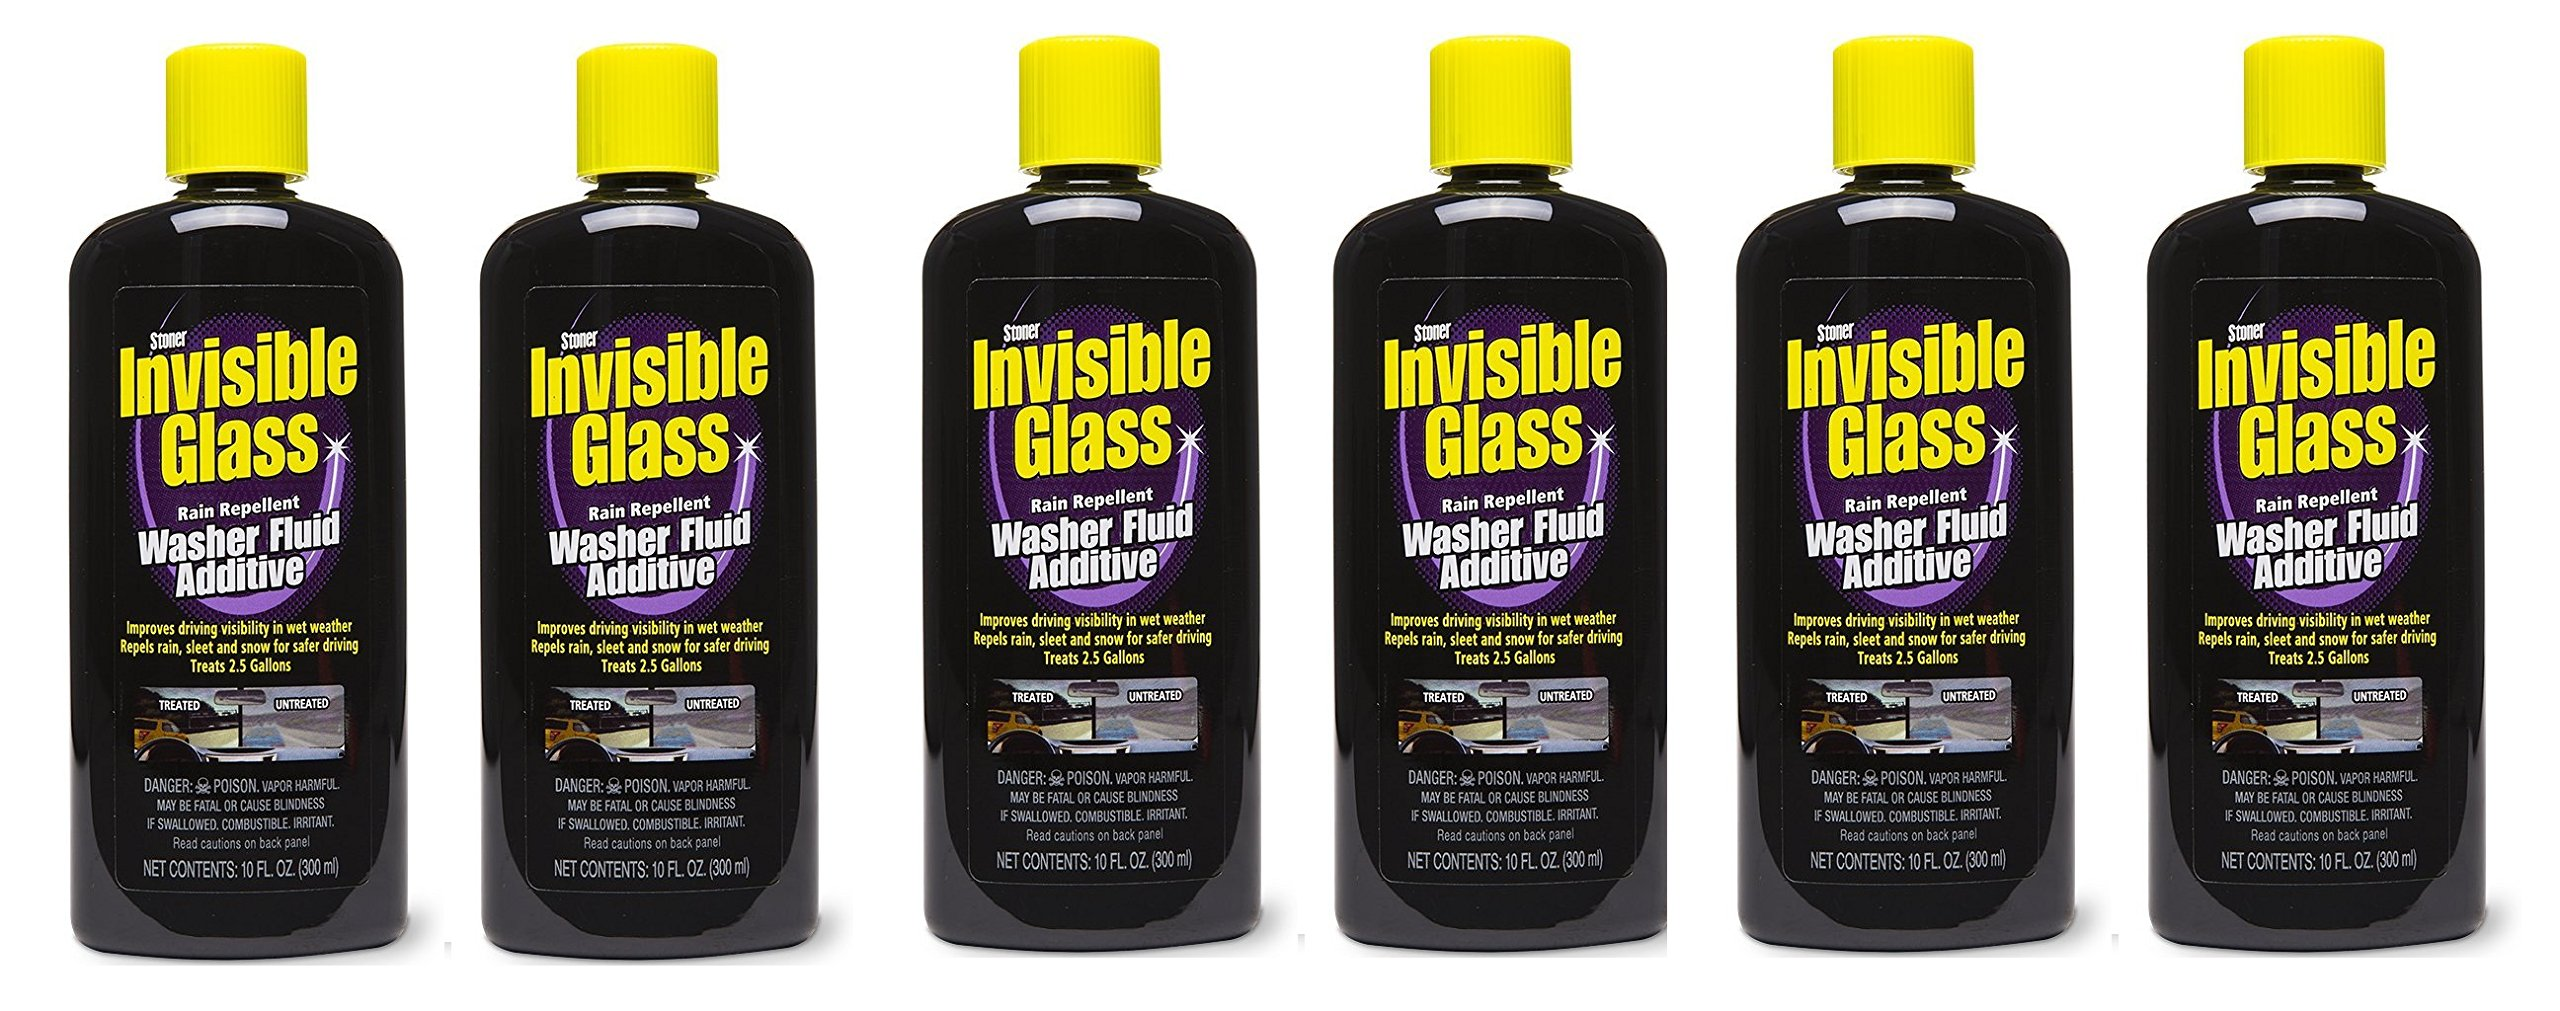 Stoner Invisible Glass Premium Glass Cleaner with Rain Repellent Washer Fluid Additive - 10 oz, 91491 (6)